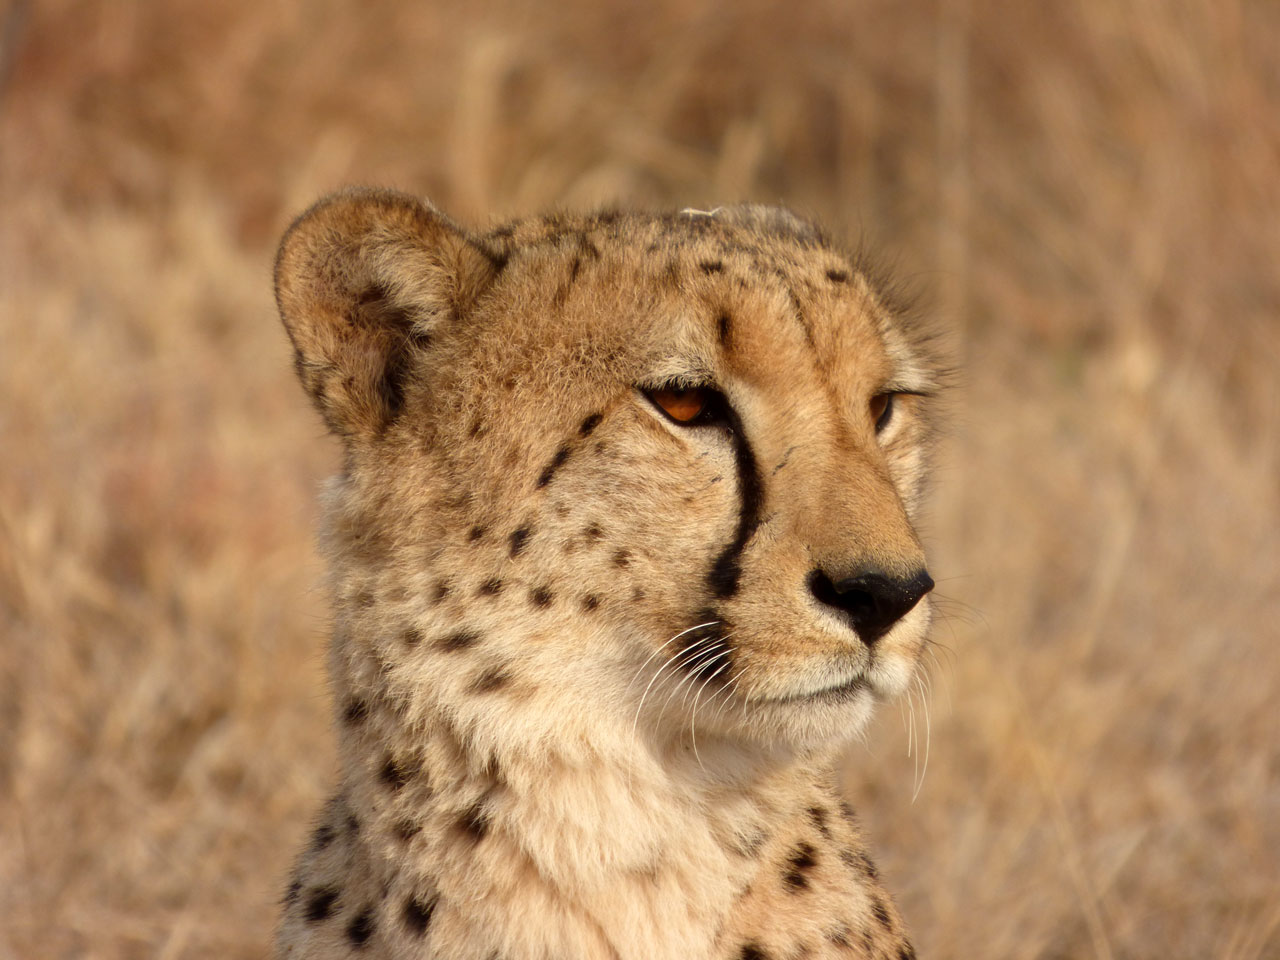 Cheetah in Madikwe Game Reserve, South Africa